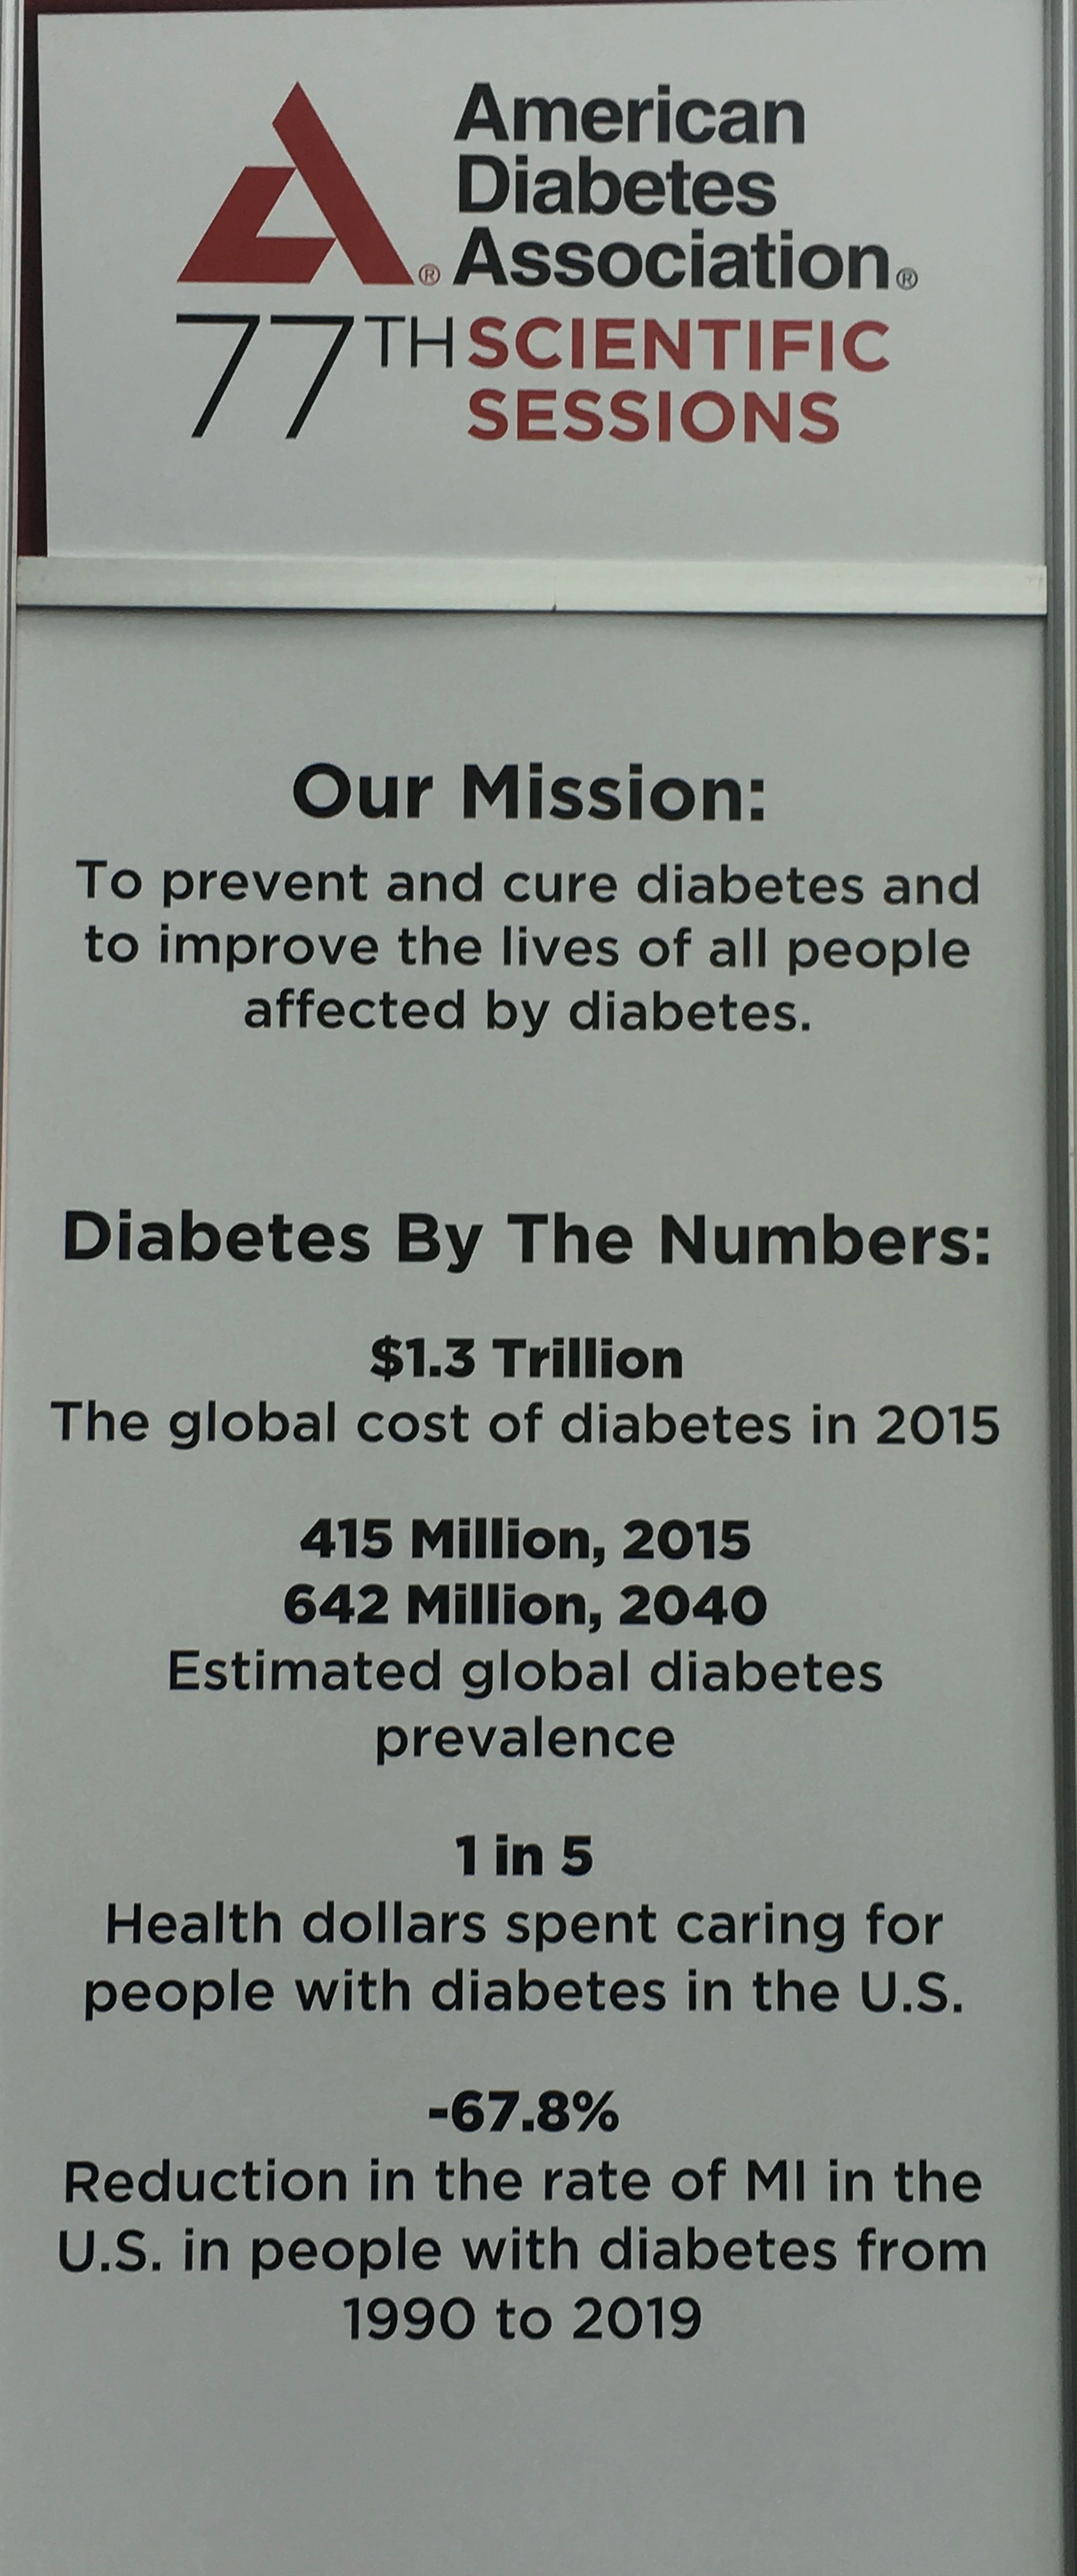 News from the American Diabetes Association 77th Sessions: The Link between Diabetes, Heart and Liver disease, Alzheimer's and Cancer